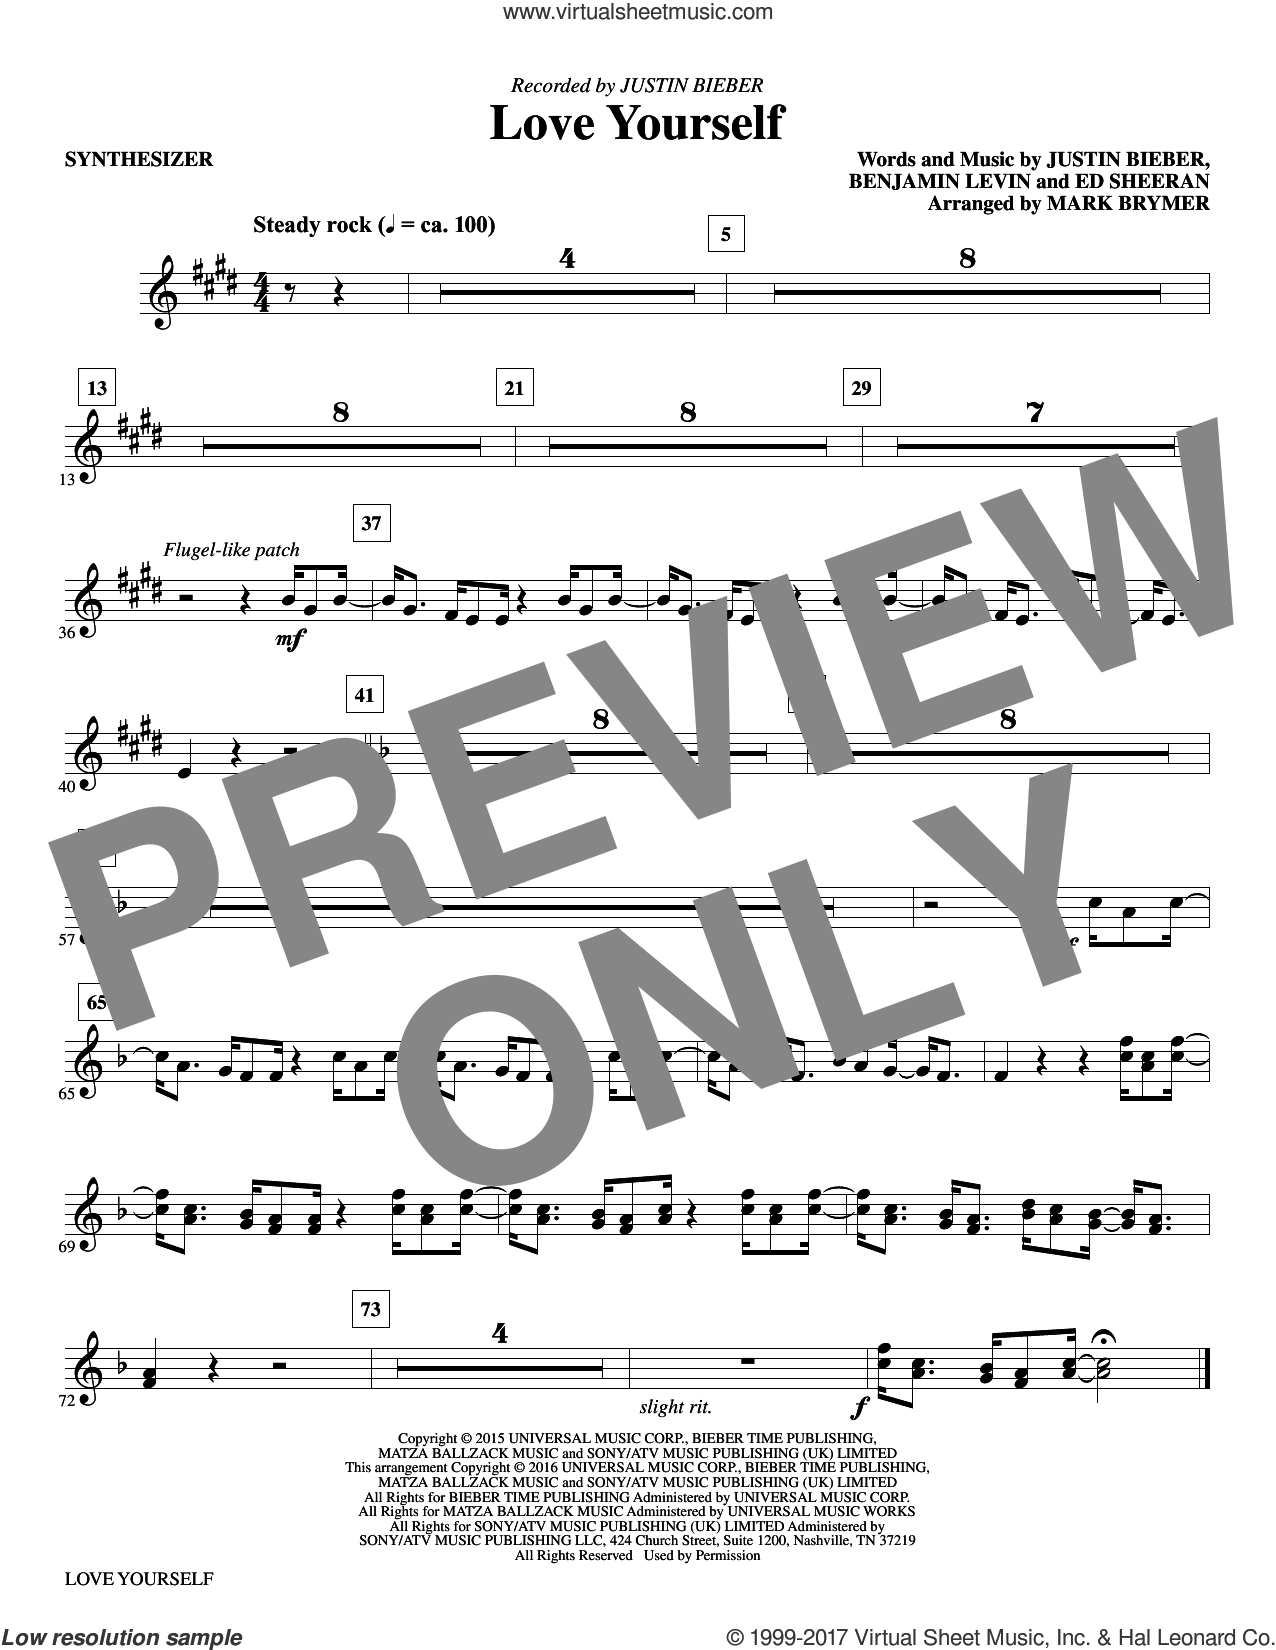 Love Yourself (complete set of parts) sheet music for orchestra/band by Mark Brymer, Benjamin Levin, Ed Sheeran and Justin Bieber, intermediate skill level